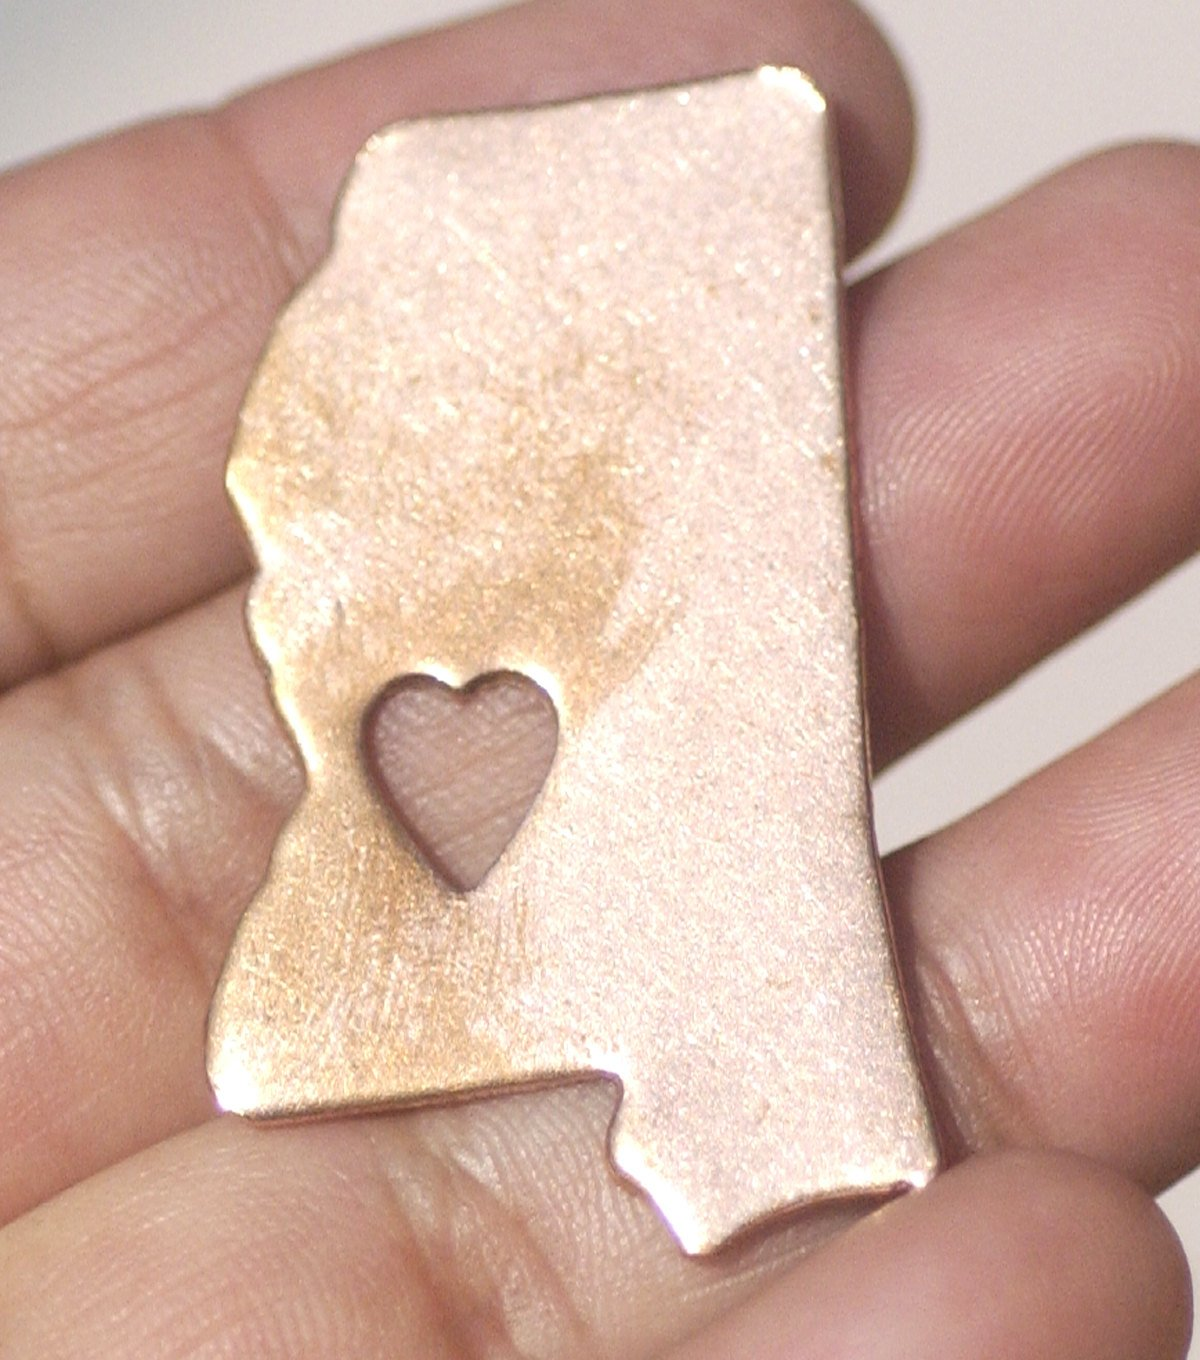 Mississippi State with Large Tiny Heart Cutout for Enameling Metalworking Stamping Texturing 100% Copper Blank - 4 pieces